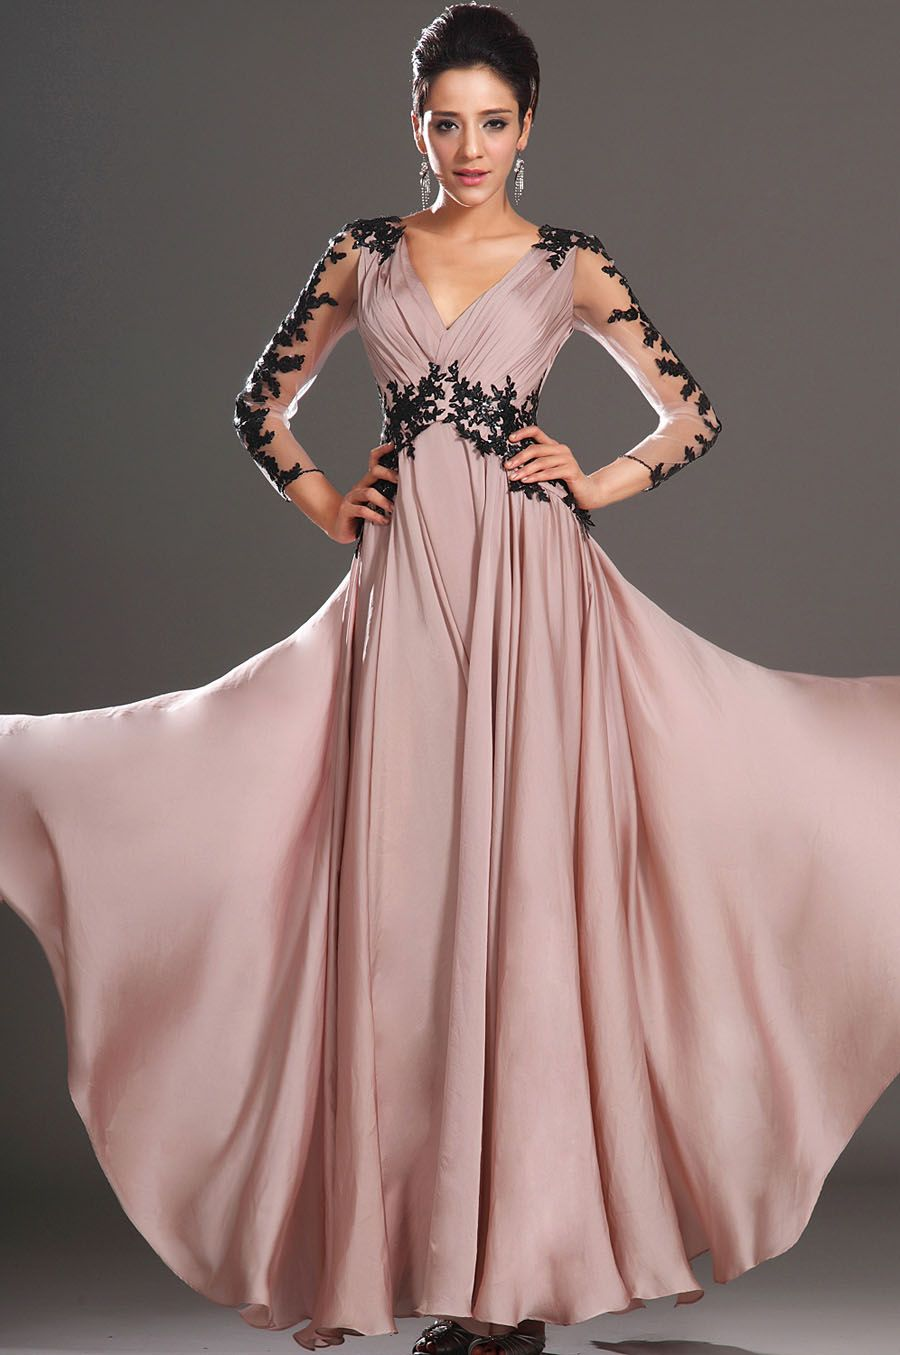 Elegant dresses with sleeves for teens champagne sleeved semi formal - New V Neck Applique Transparent Long Sleeve Evening Gown Party Prom Formal Dress